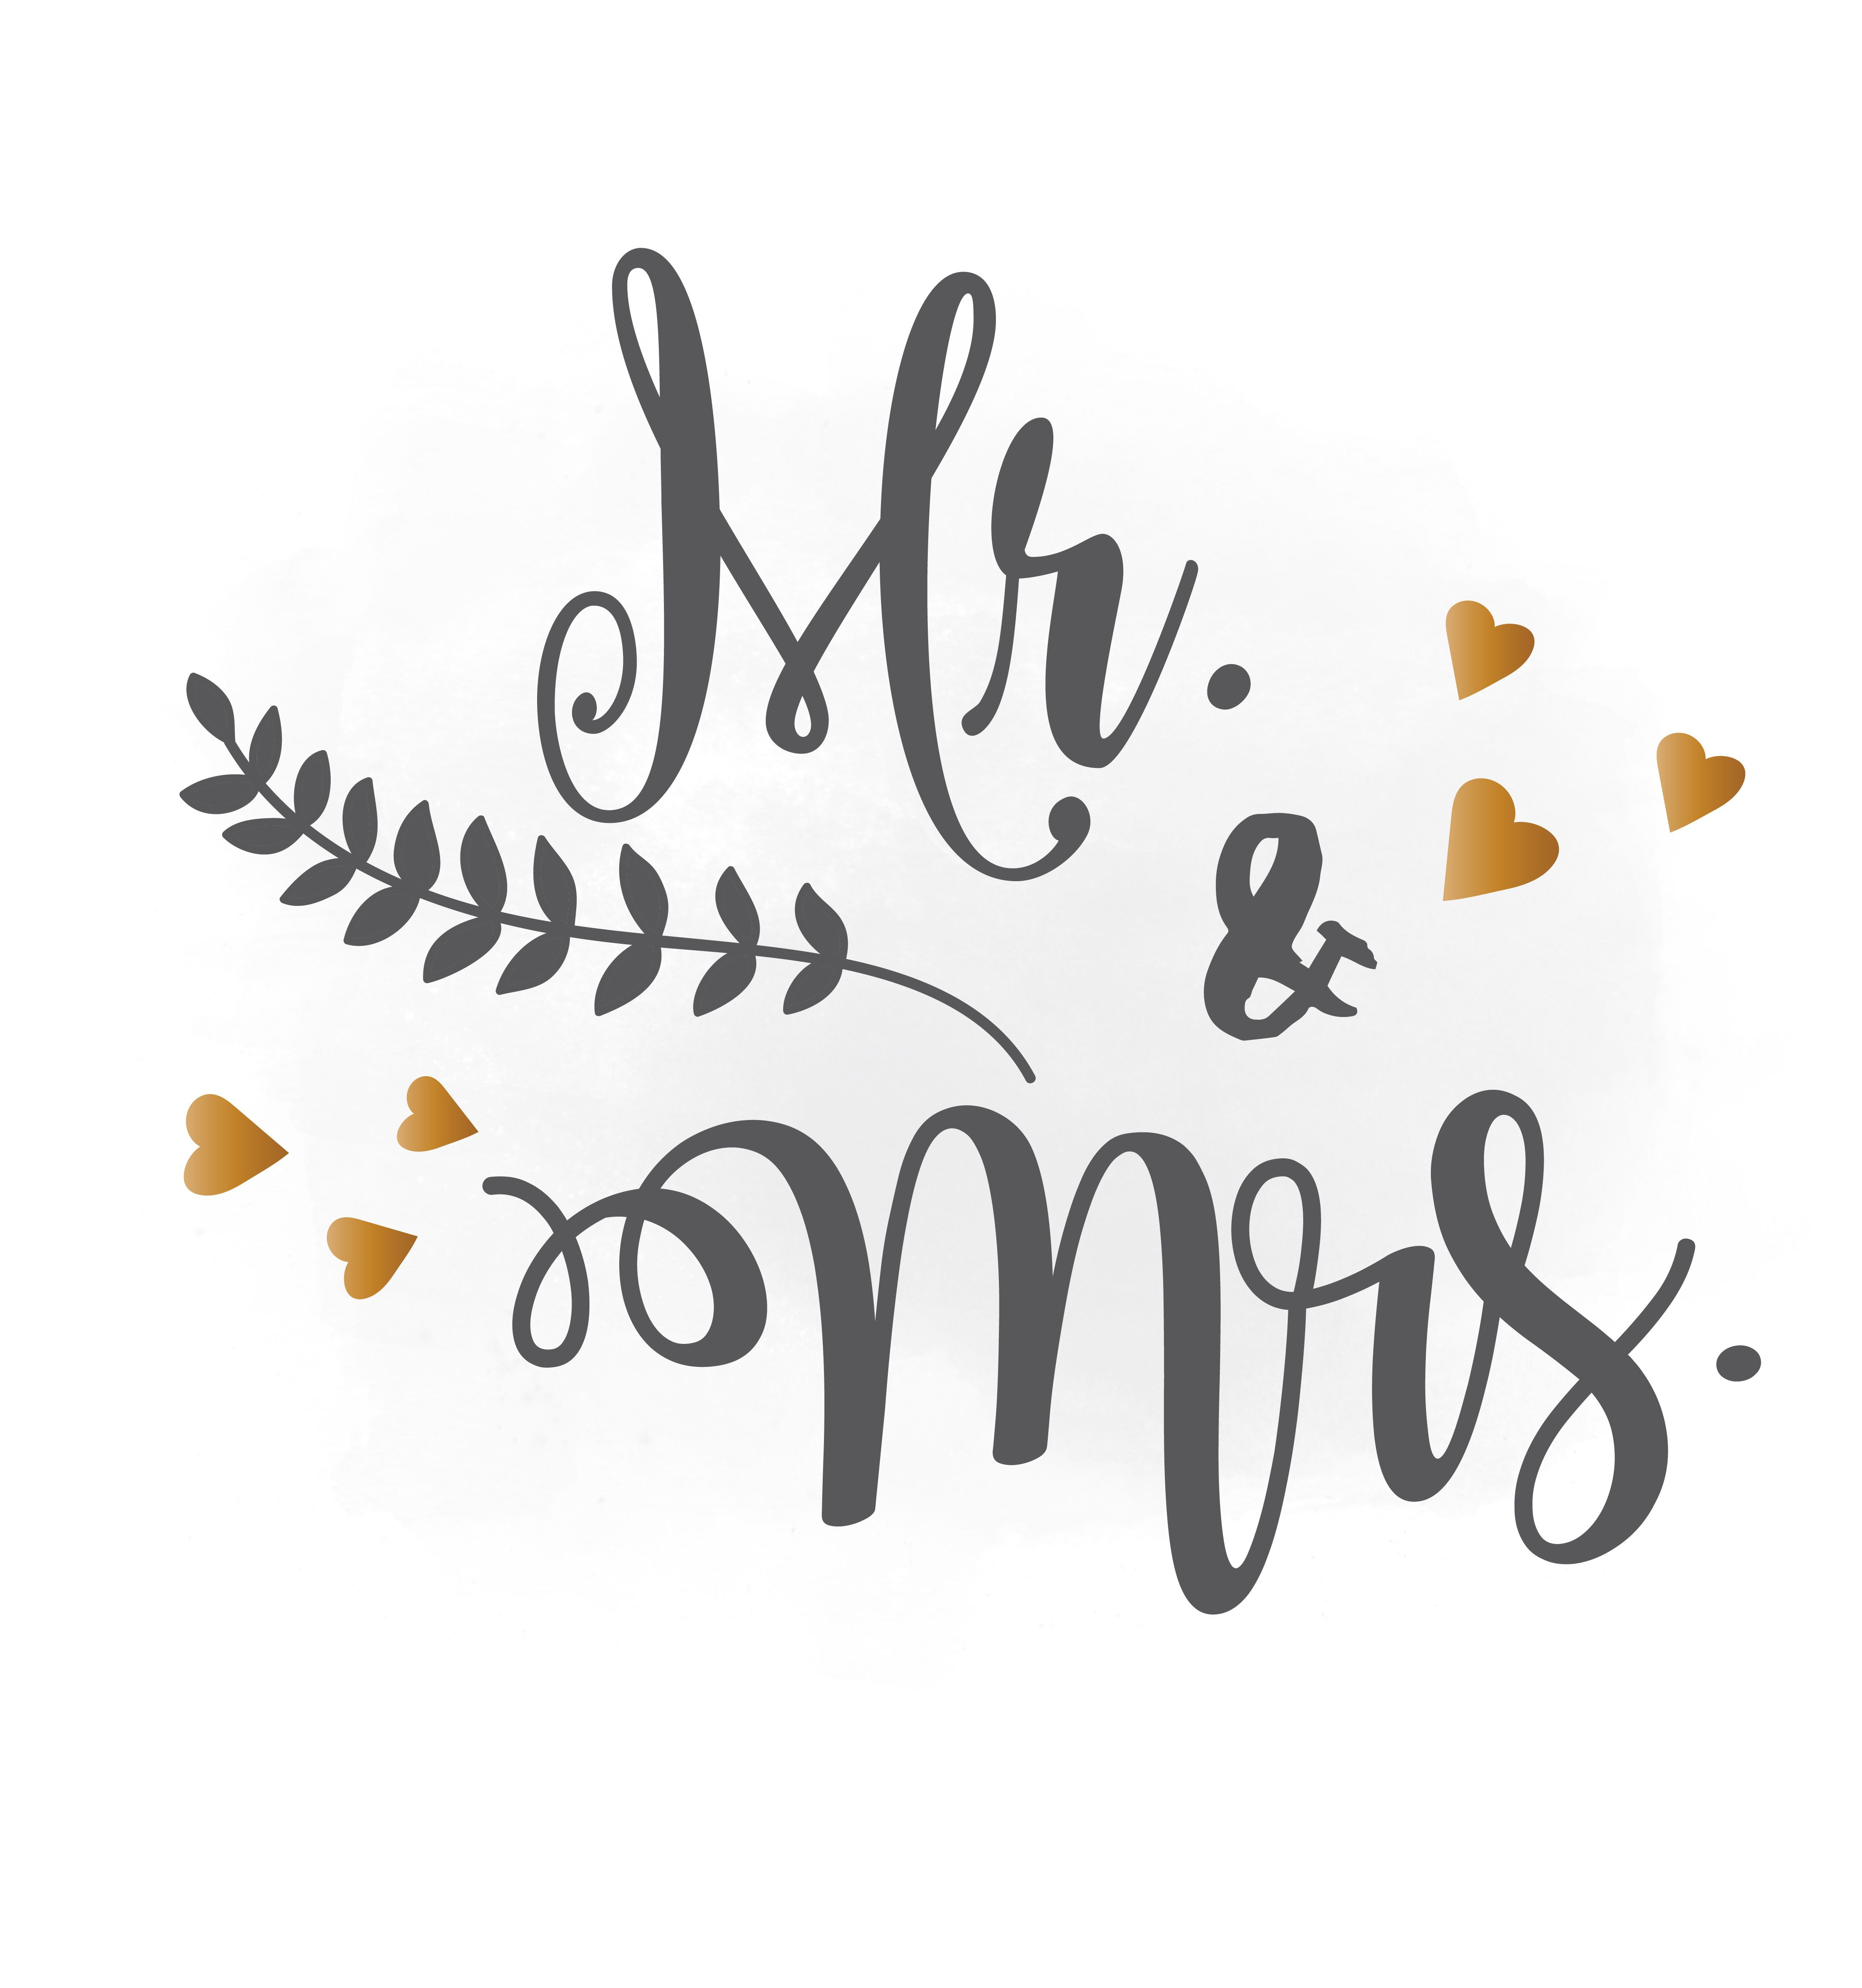 Mr and Mrs SVG clipart, wedding announcement.